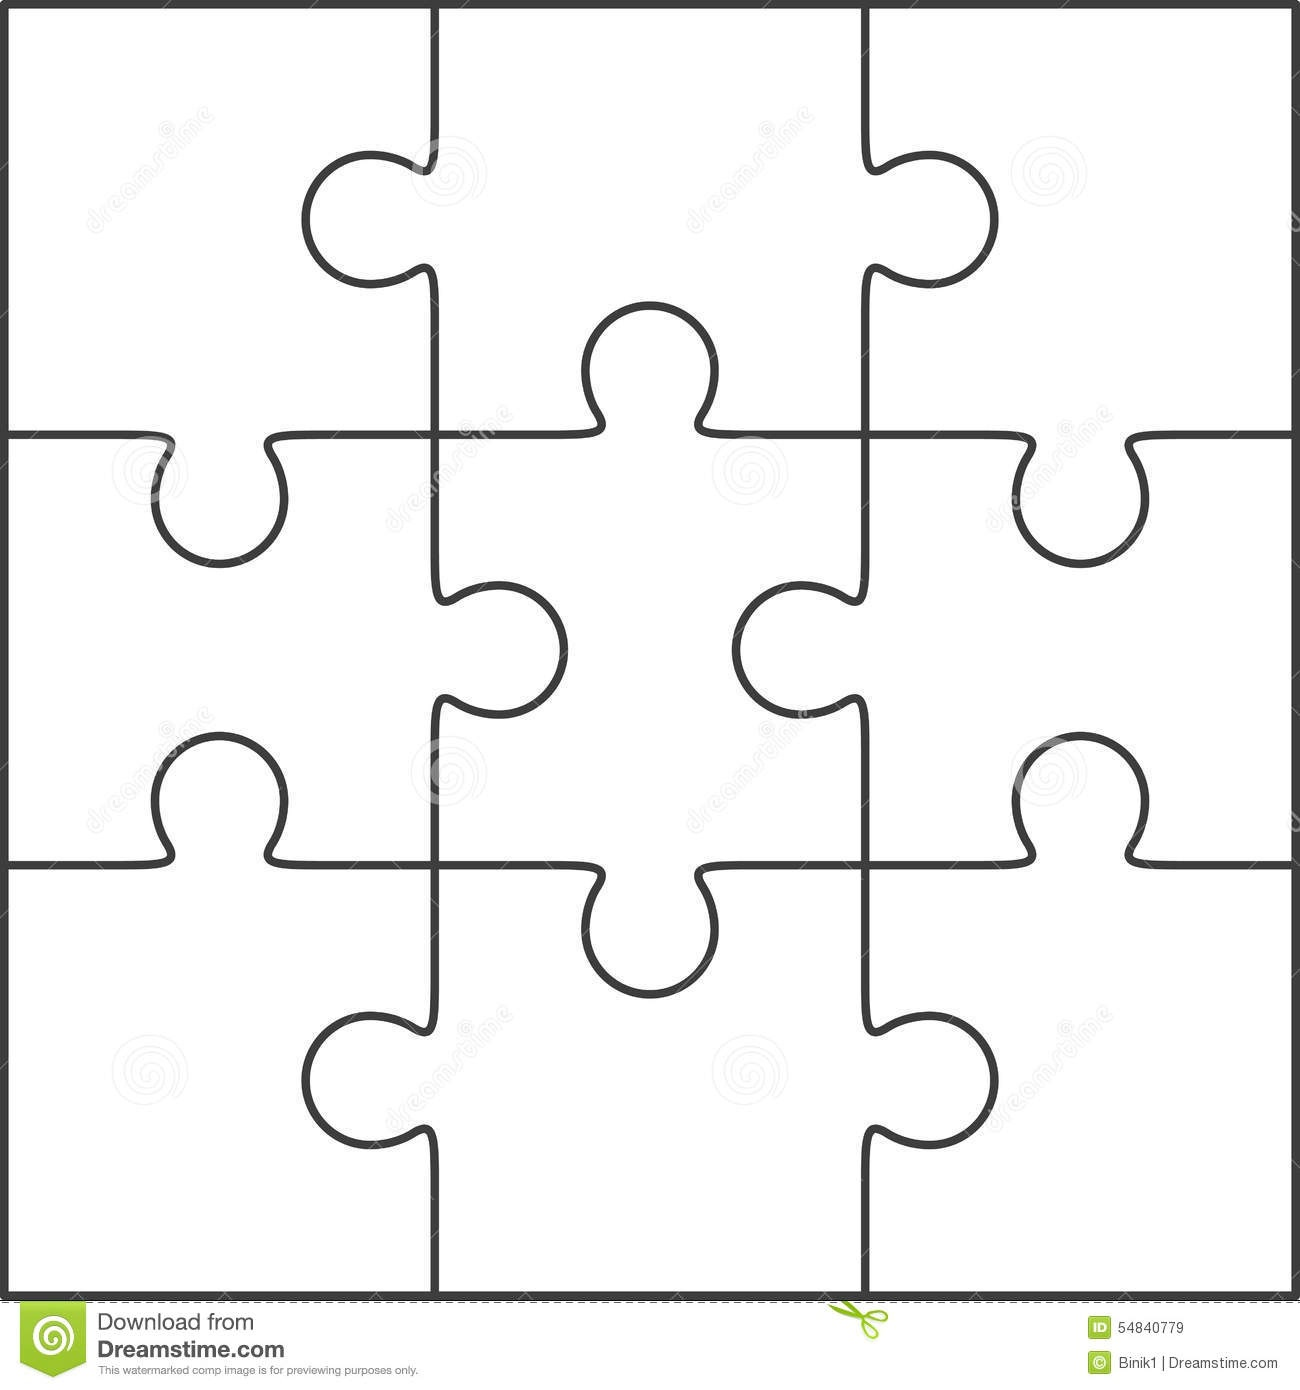 Jigsaw Puzzle Blank Template 3X3 Stock Illustration - Illustration - Free Printable Blank Puzzle Pieces